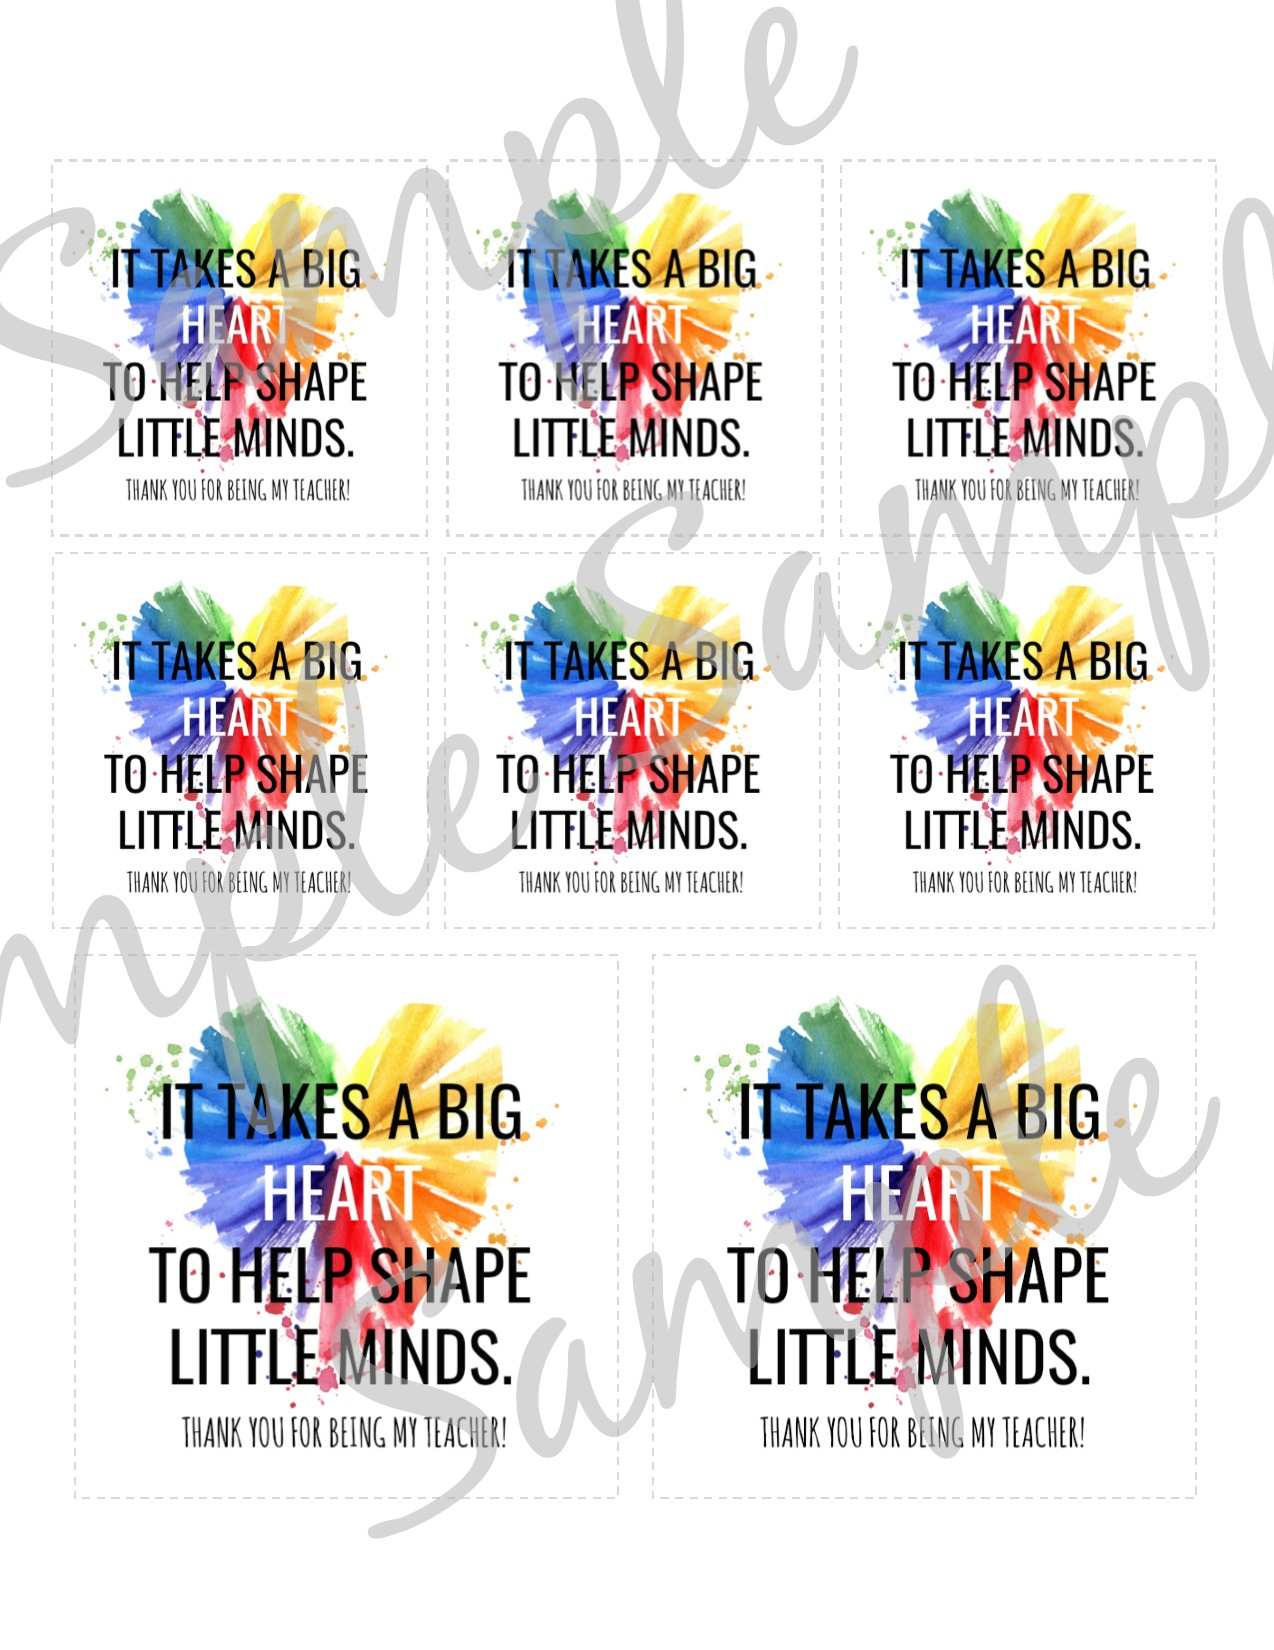 image relating to It Takes a Big Heart to Shape Little Minds Printable identify Massive Middle Trainer Apprec. Reward Tag Printable 1